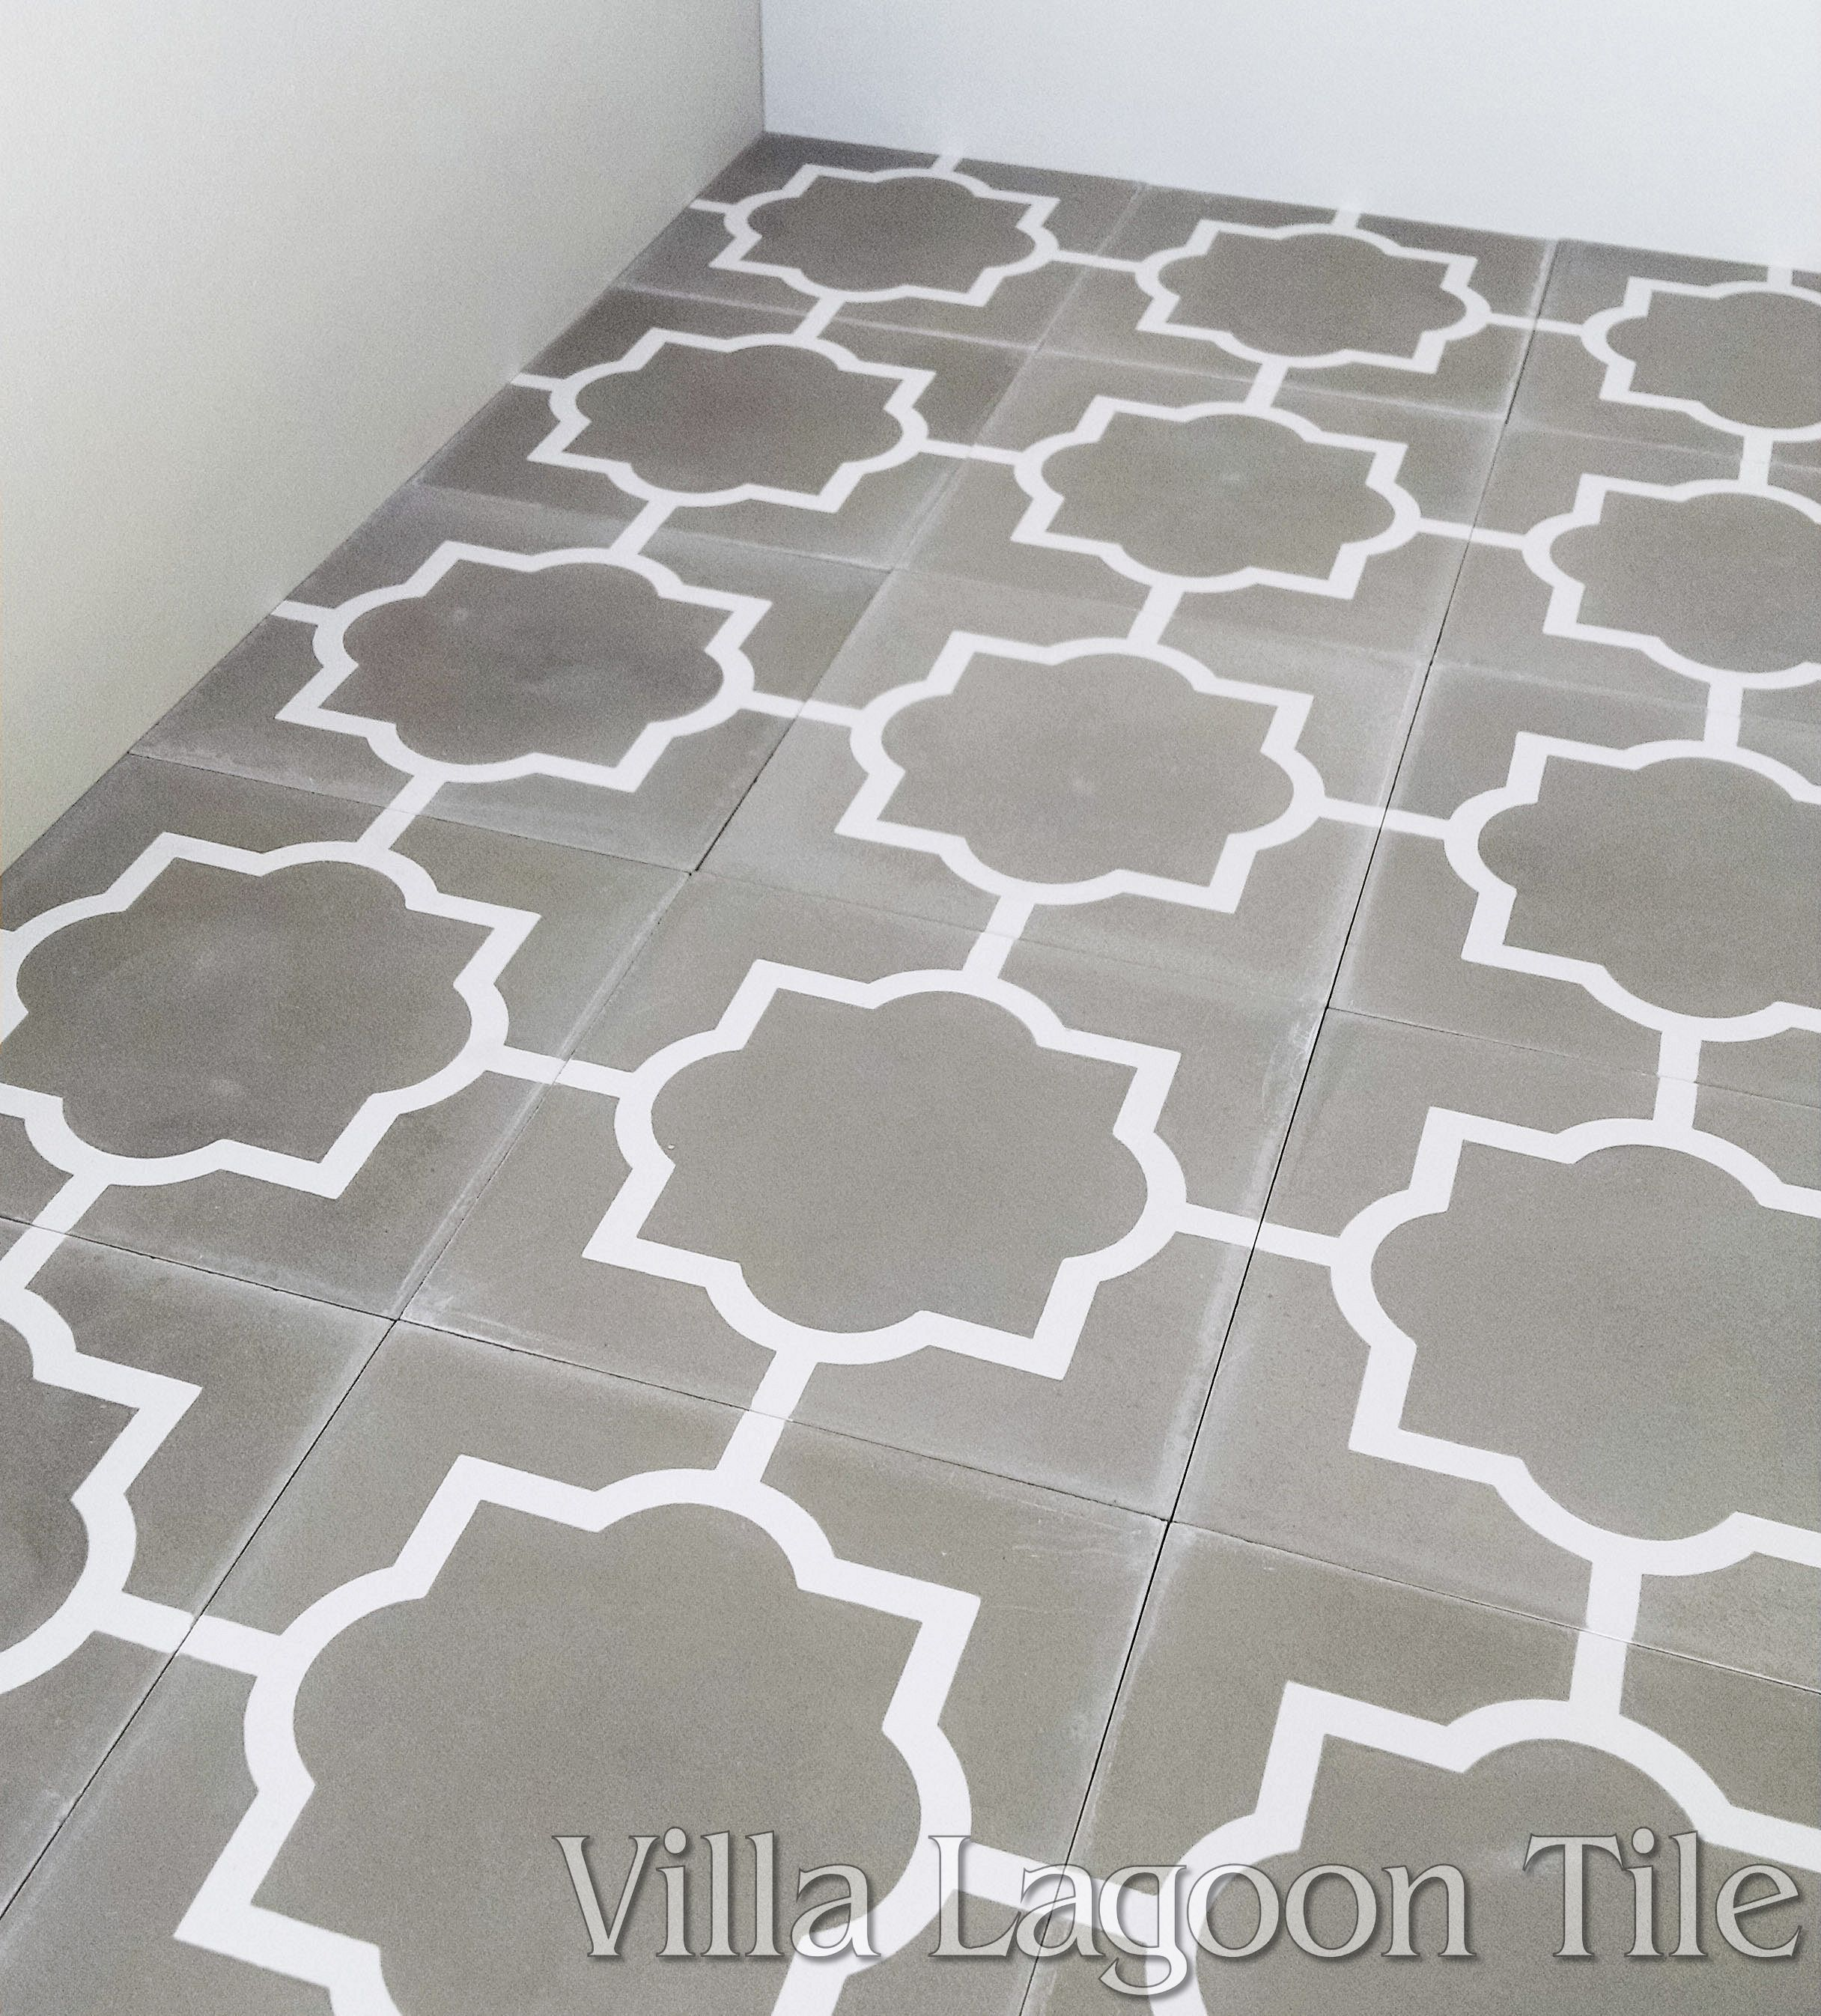 For Larger Image Piazza Petite Cement Tile Floor